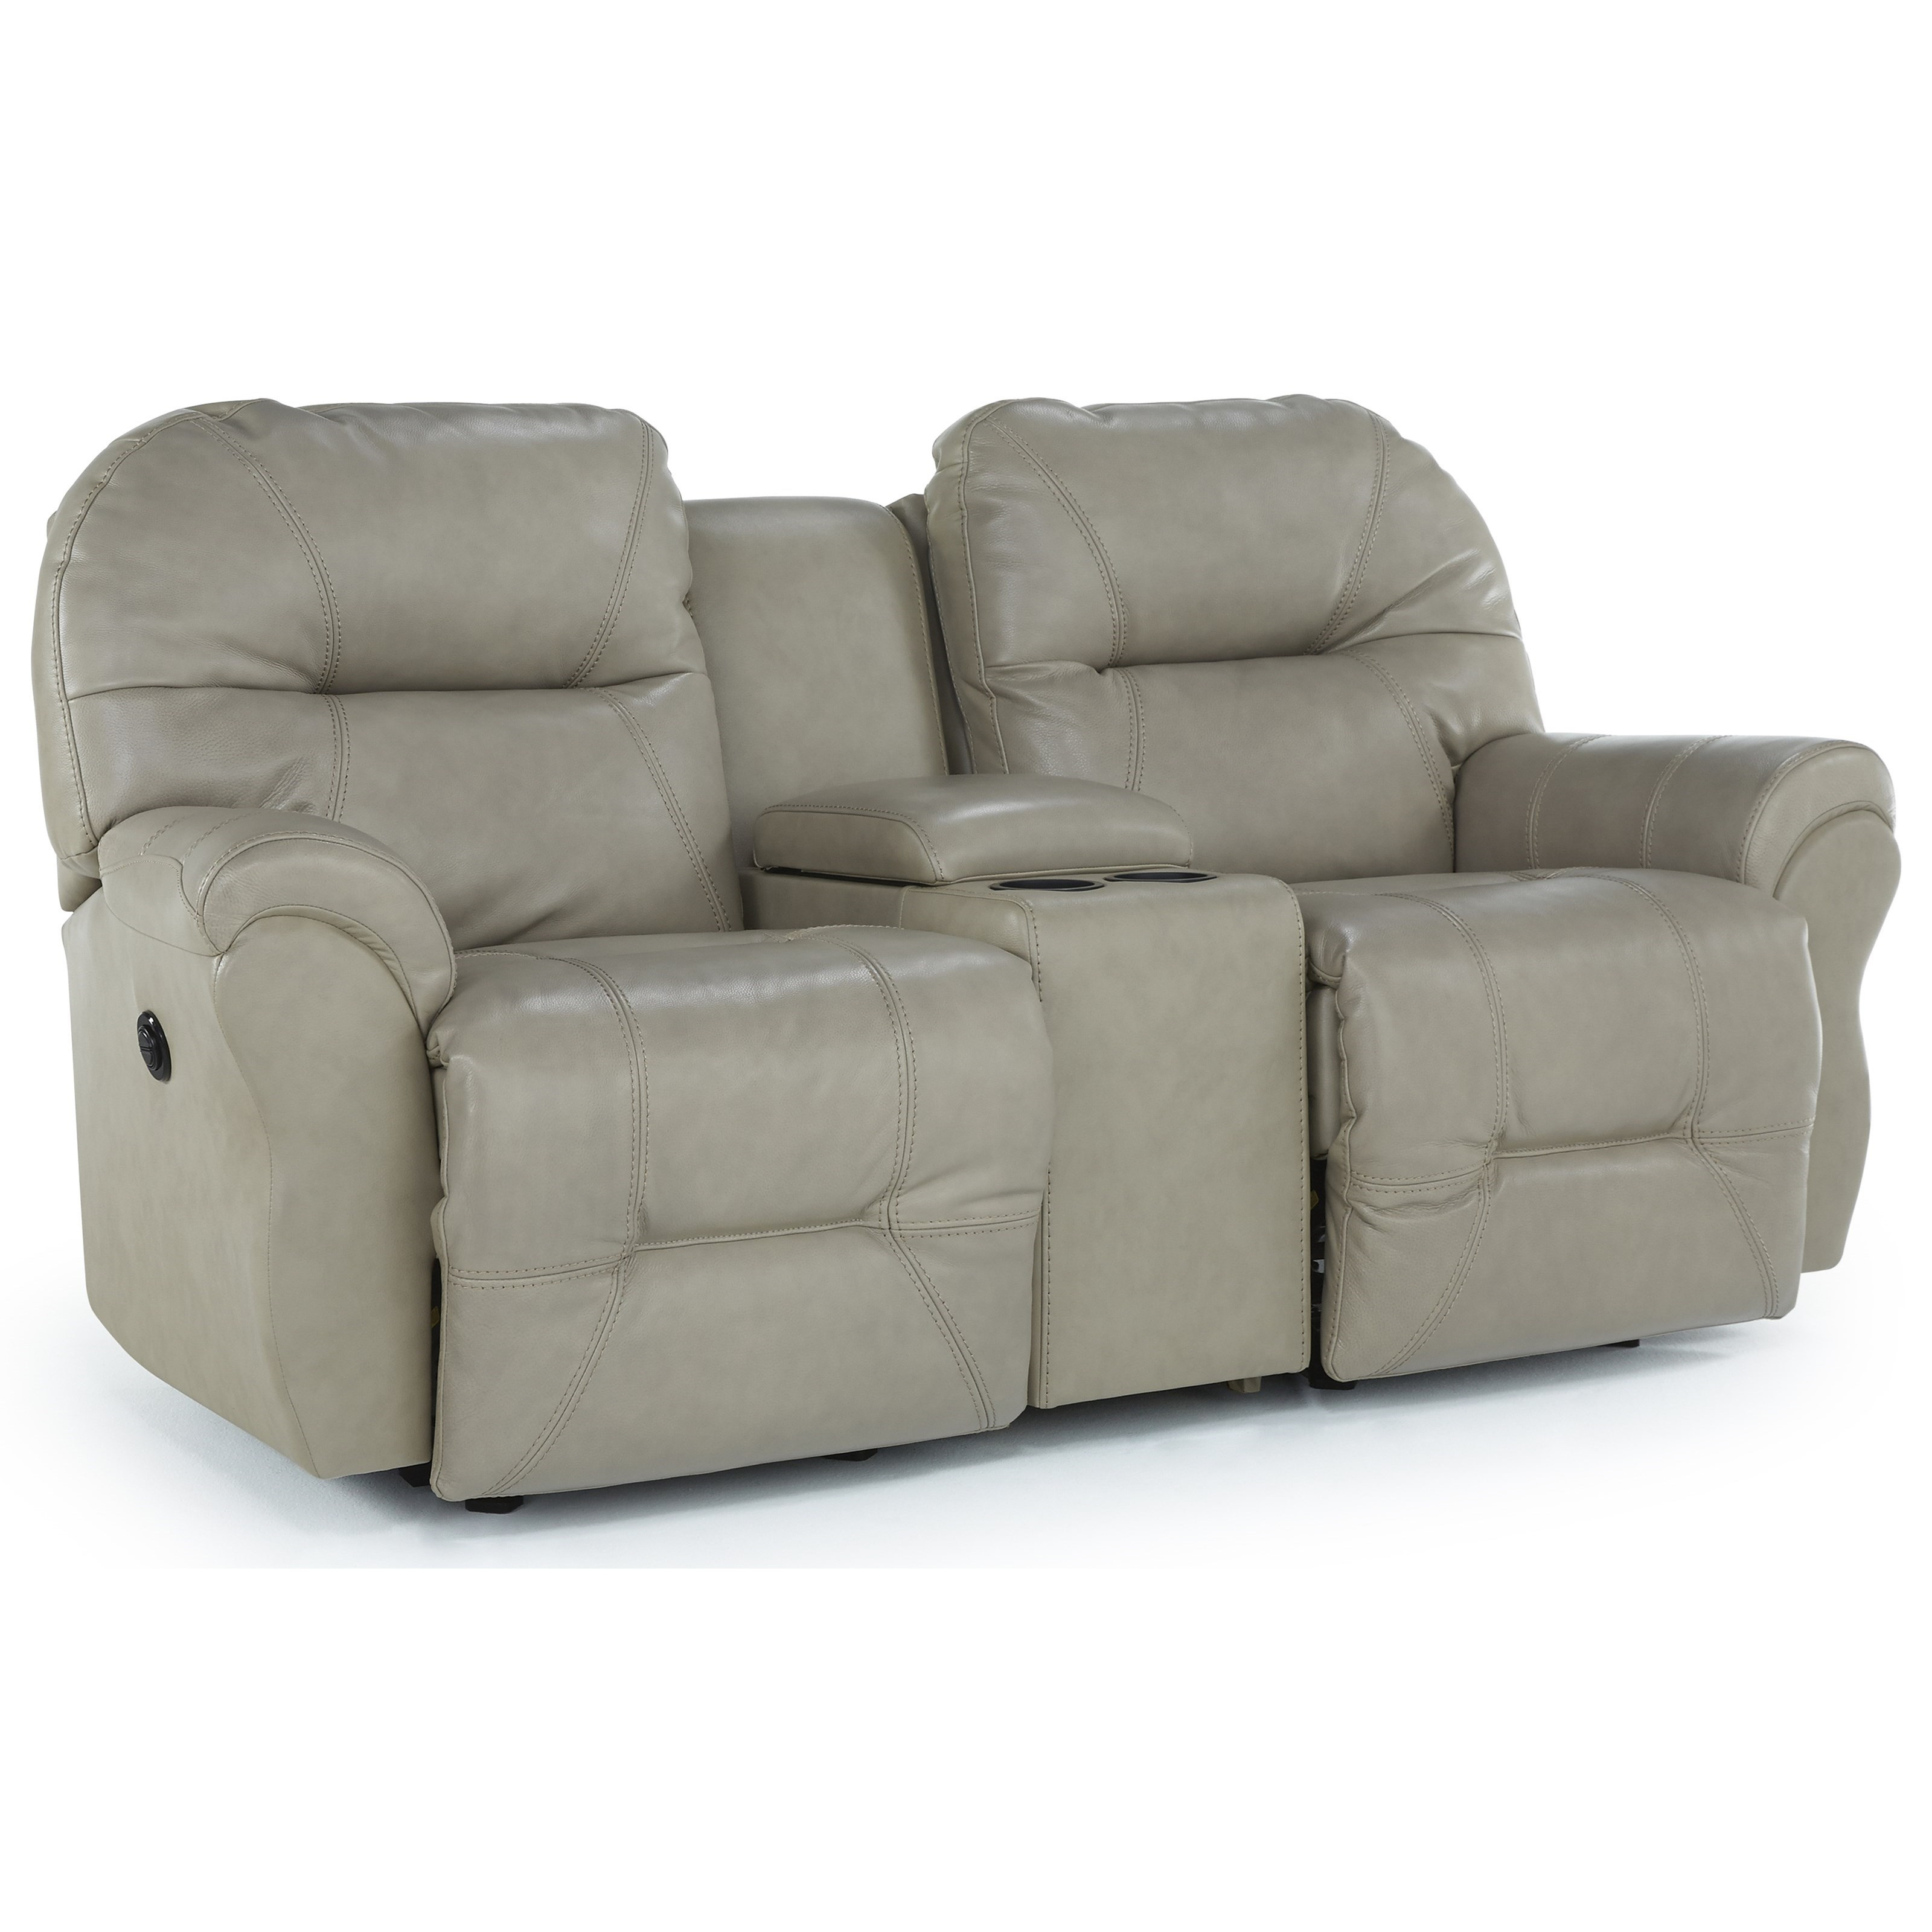 Bodie Space Saver Reclining Loveseat by Best Home Furnishings at Baer's Furniture